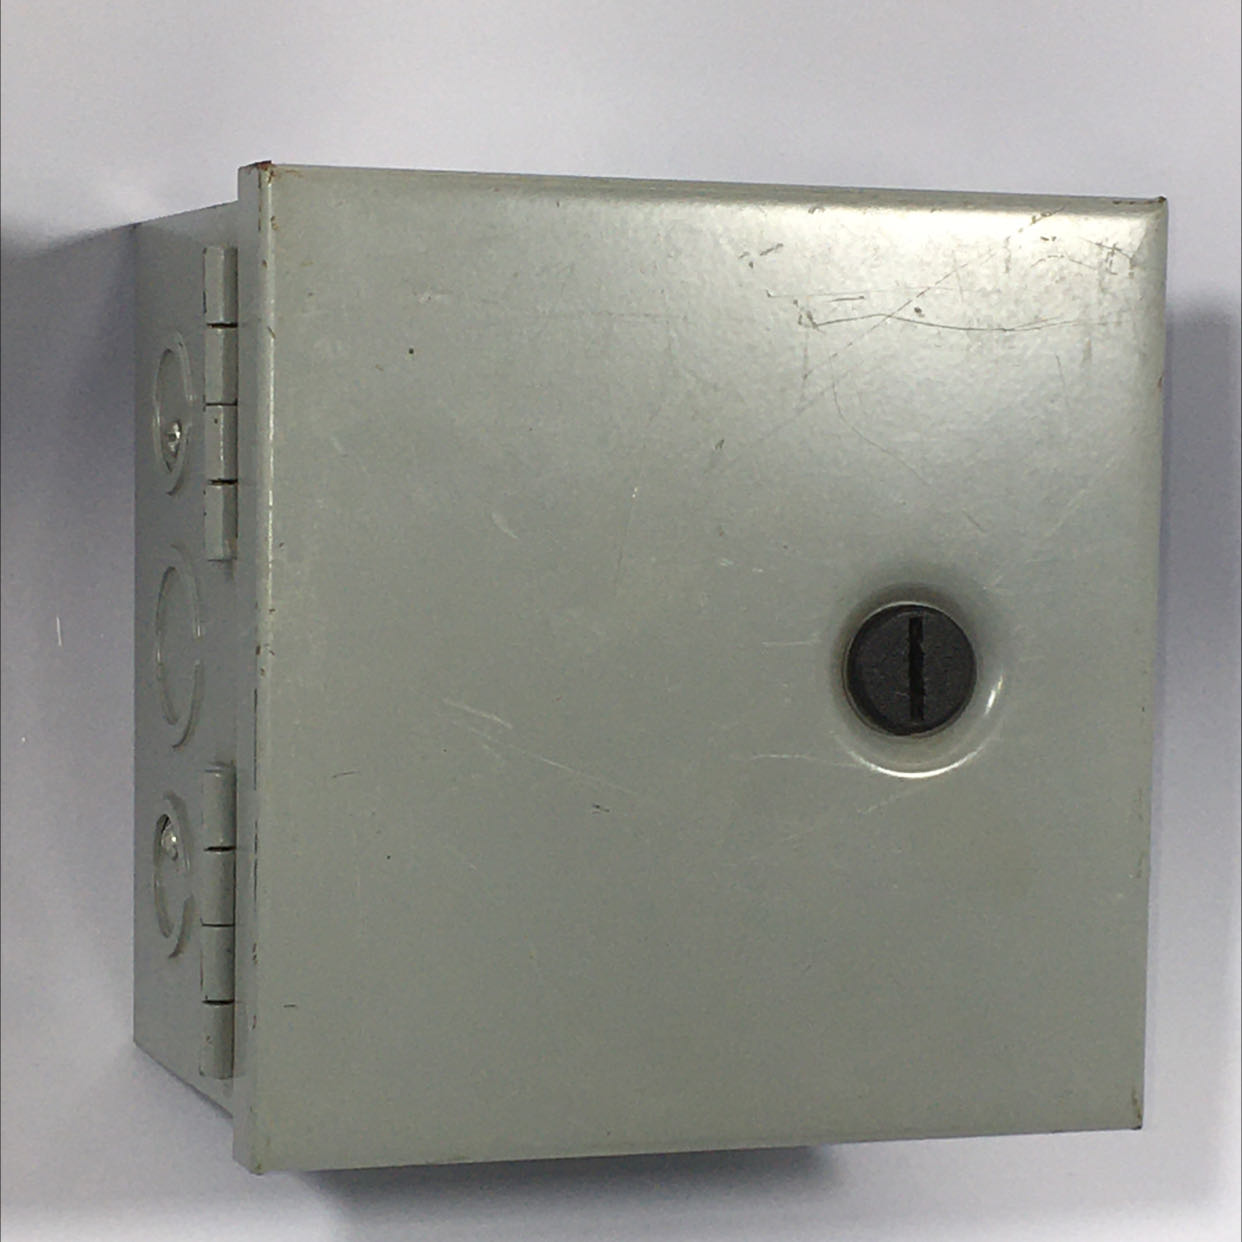 Hoffman A-HE6X6X4 Type 1 Enclosure/Electric Box